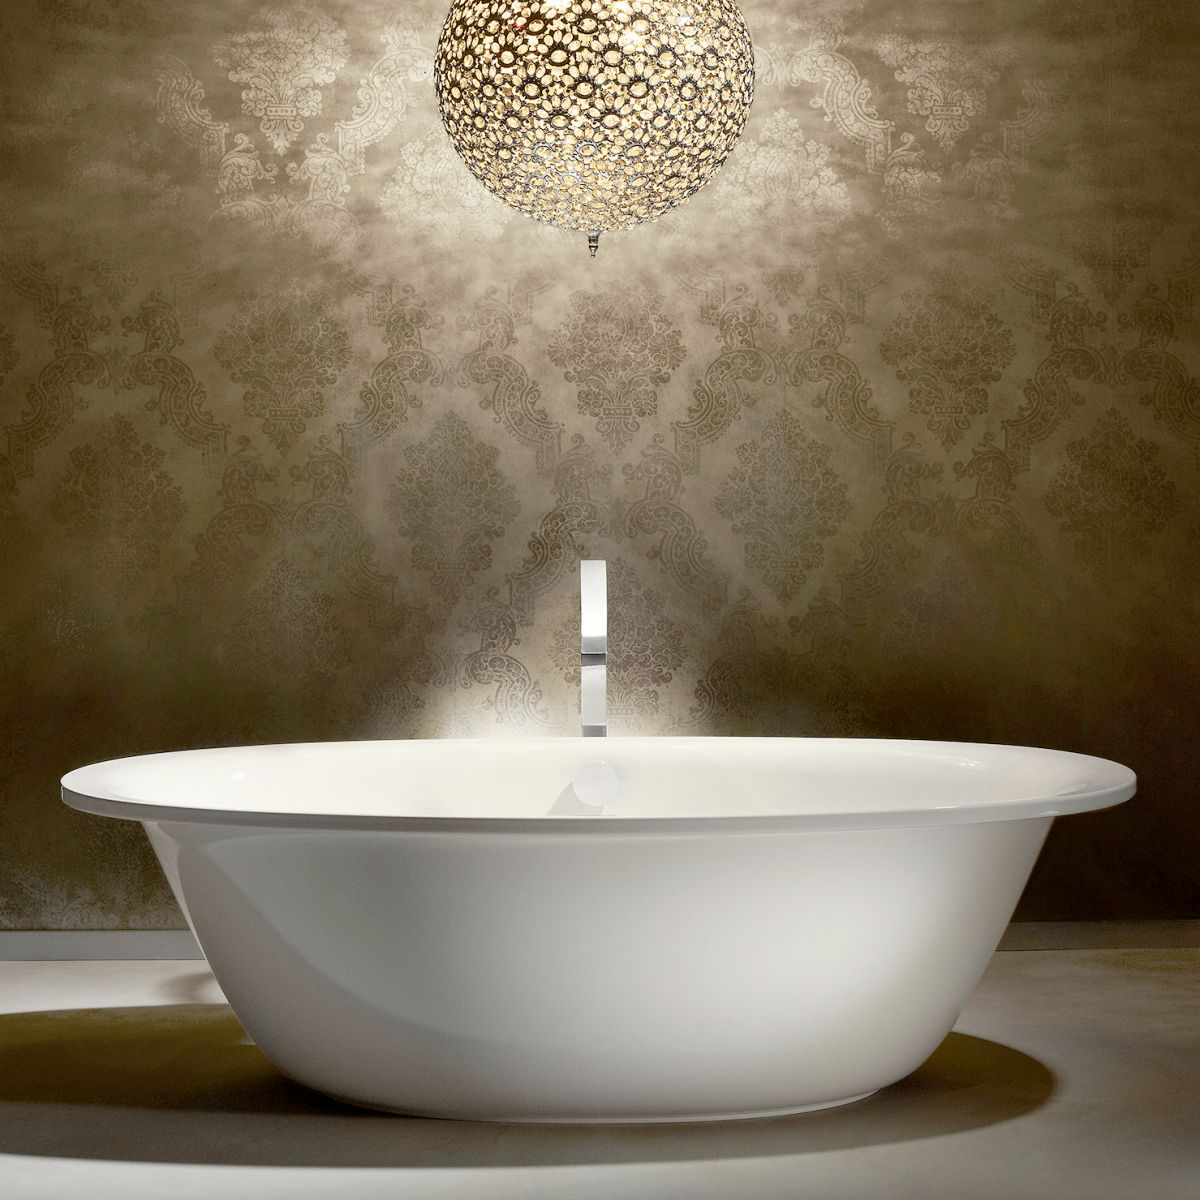 Kaldewei Ellipso Duo Oval Freestanding Steel Bath : UK Bathrooms